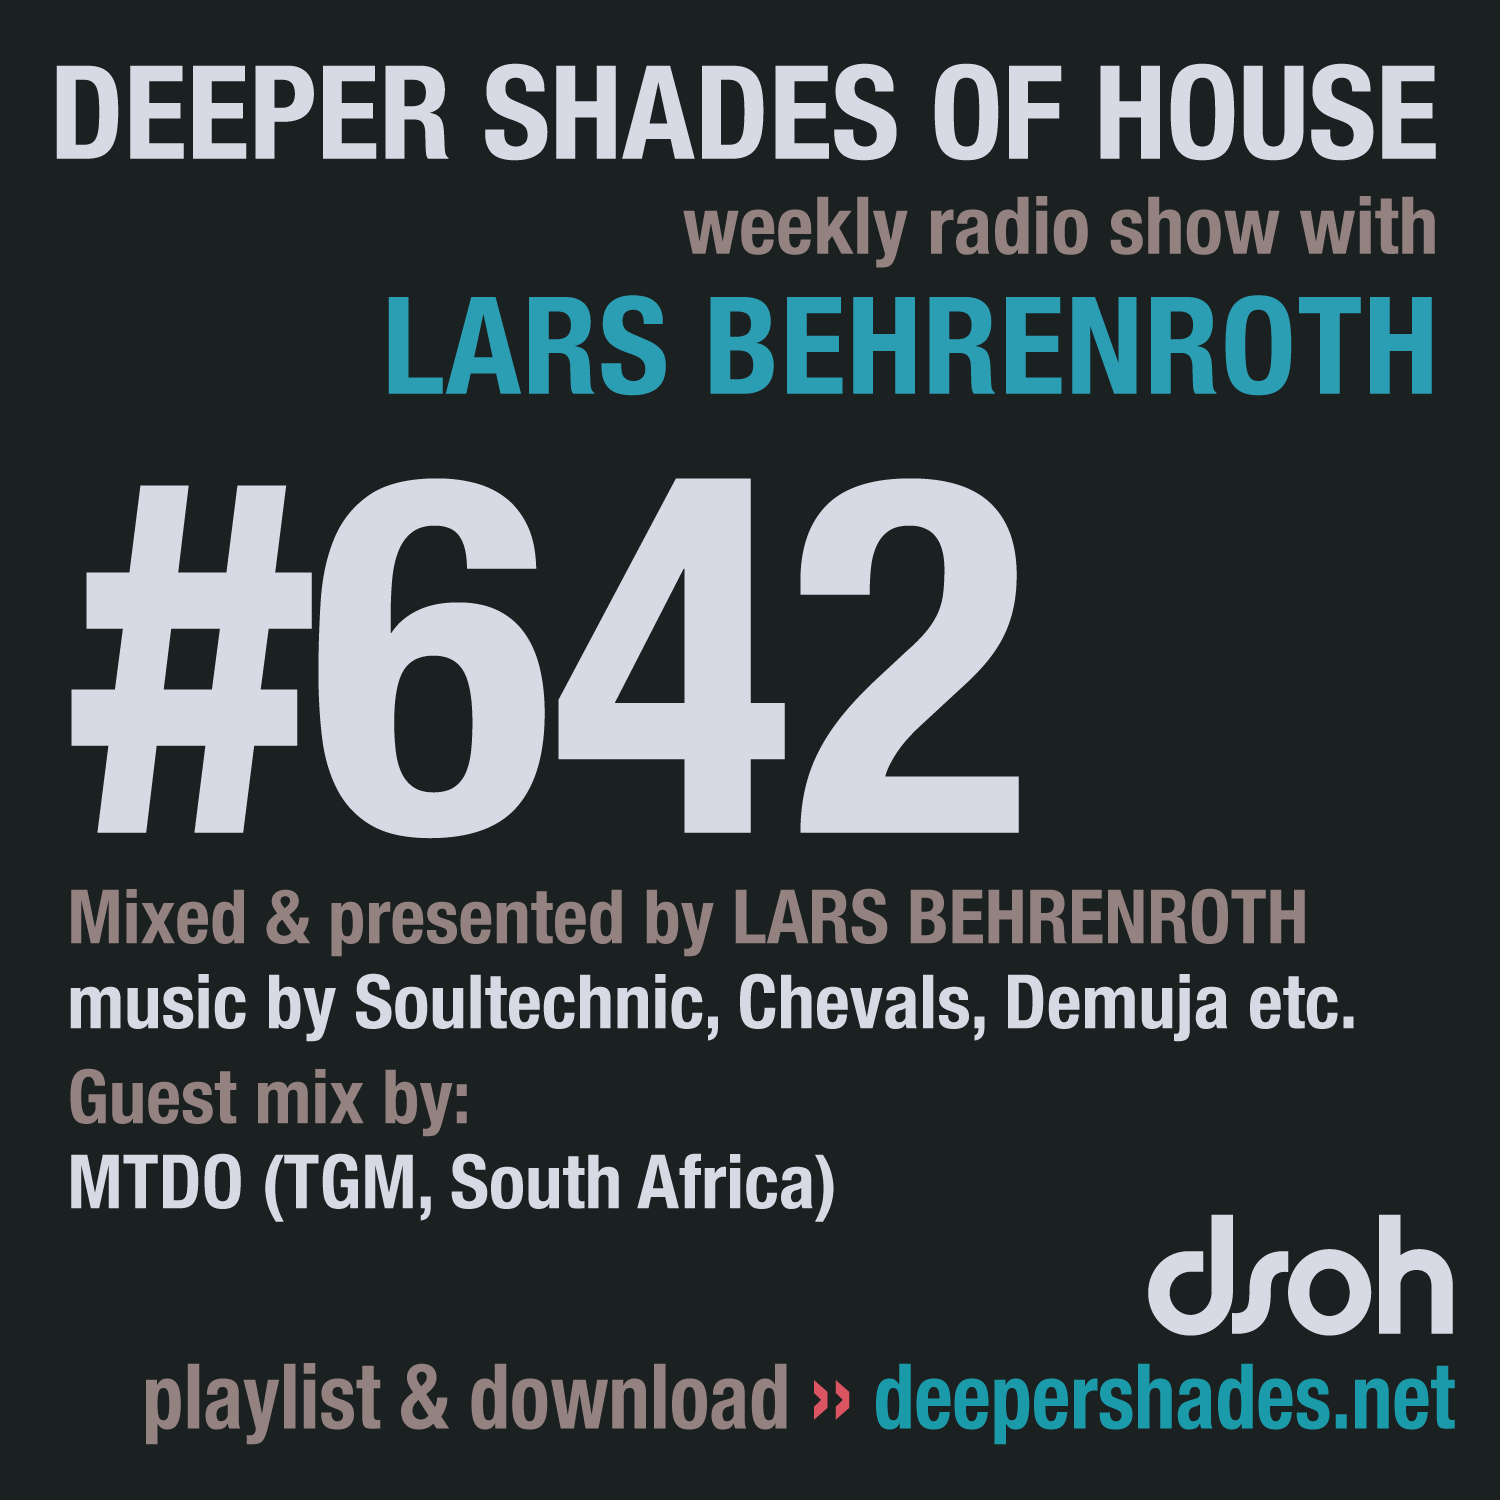 Deeper Shades Of House 642